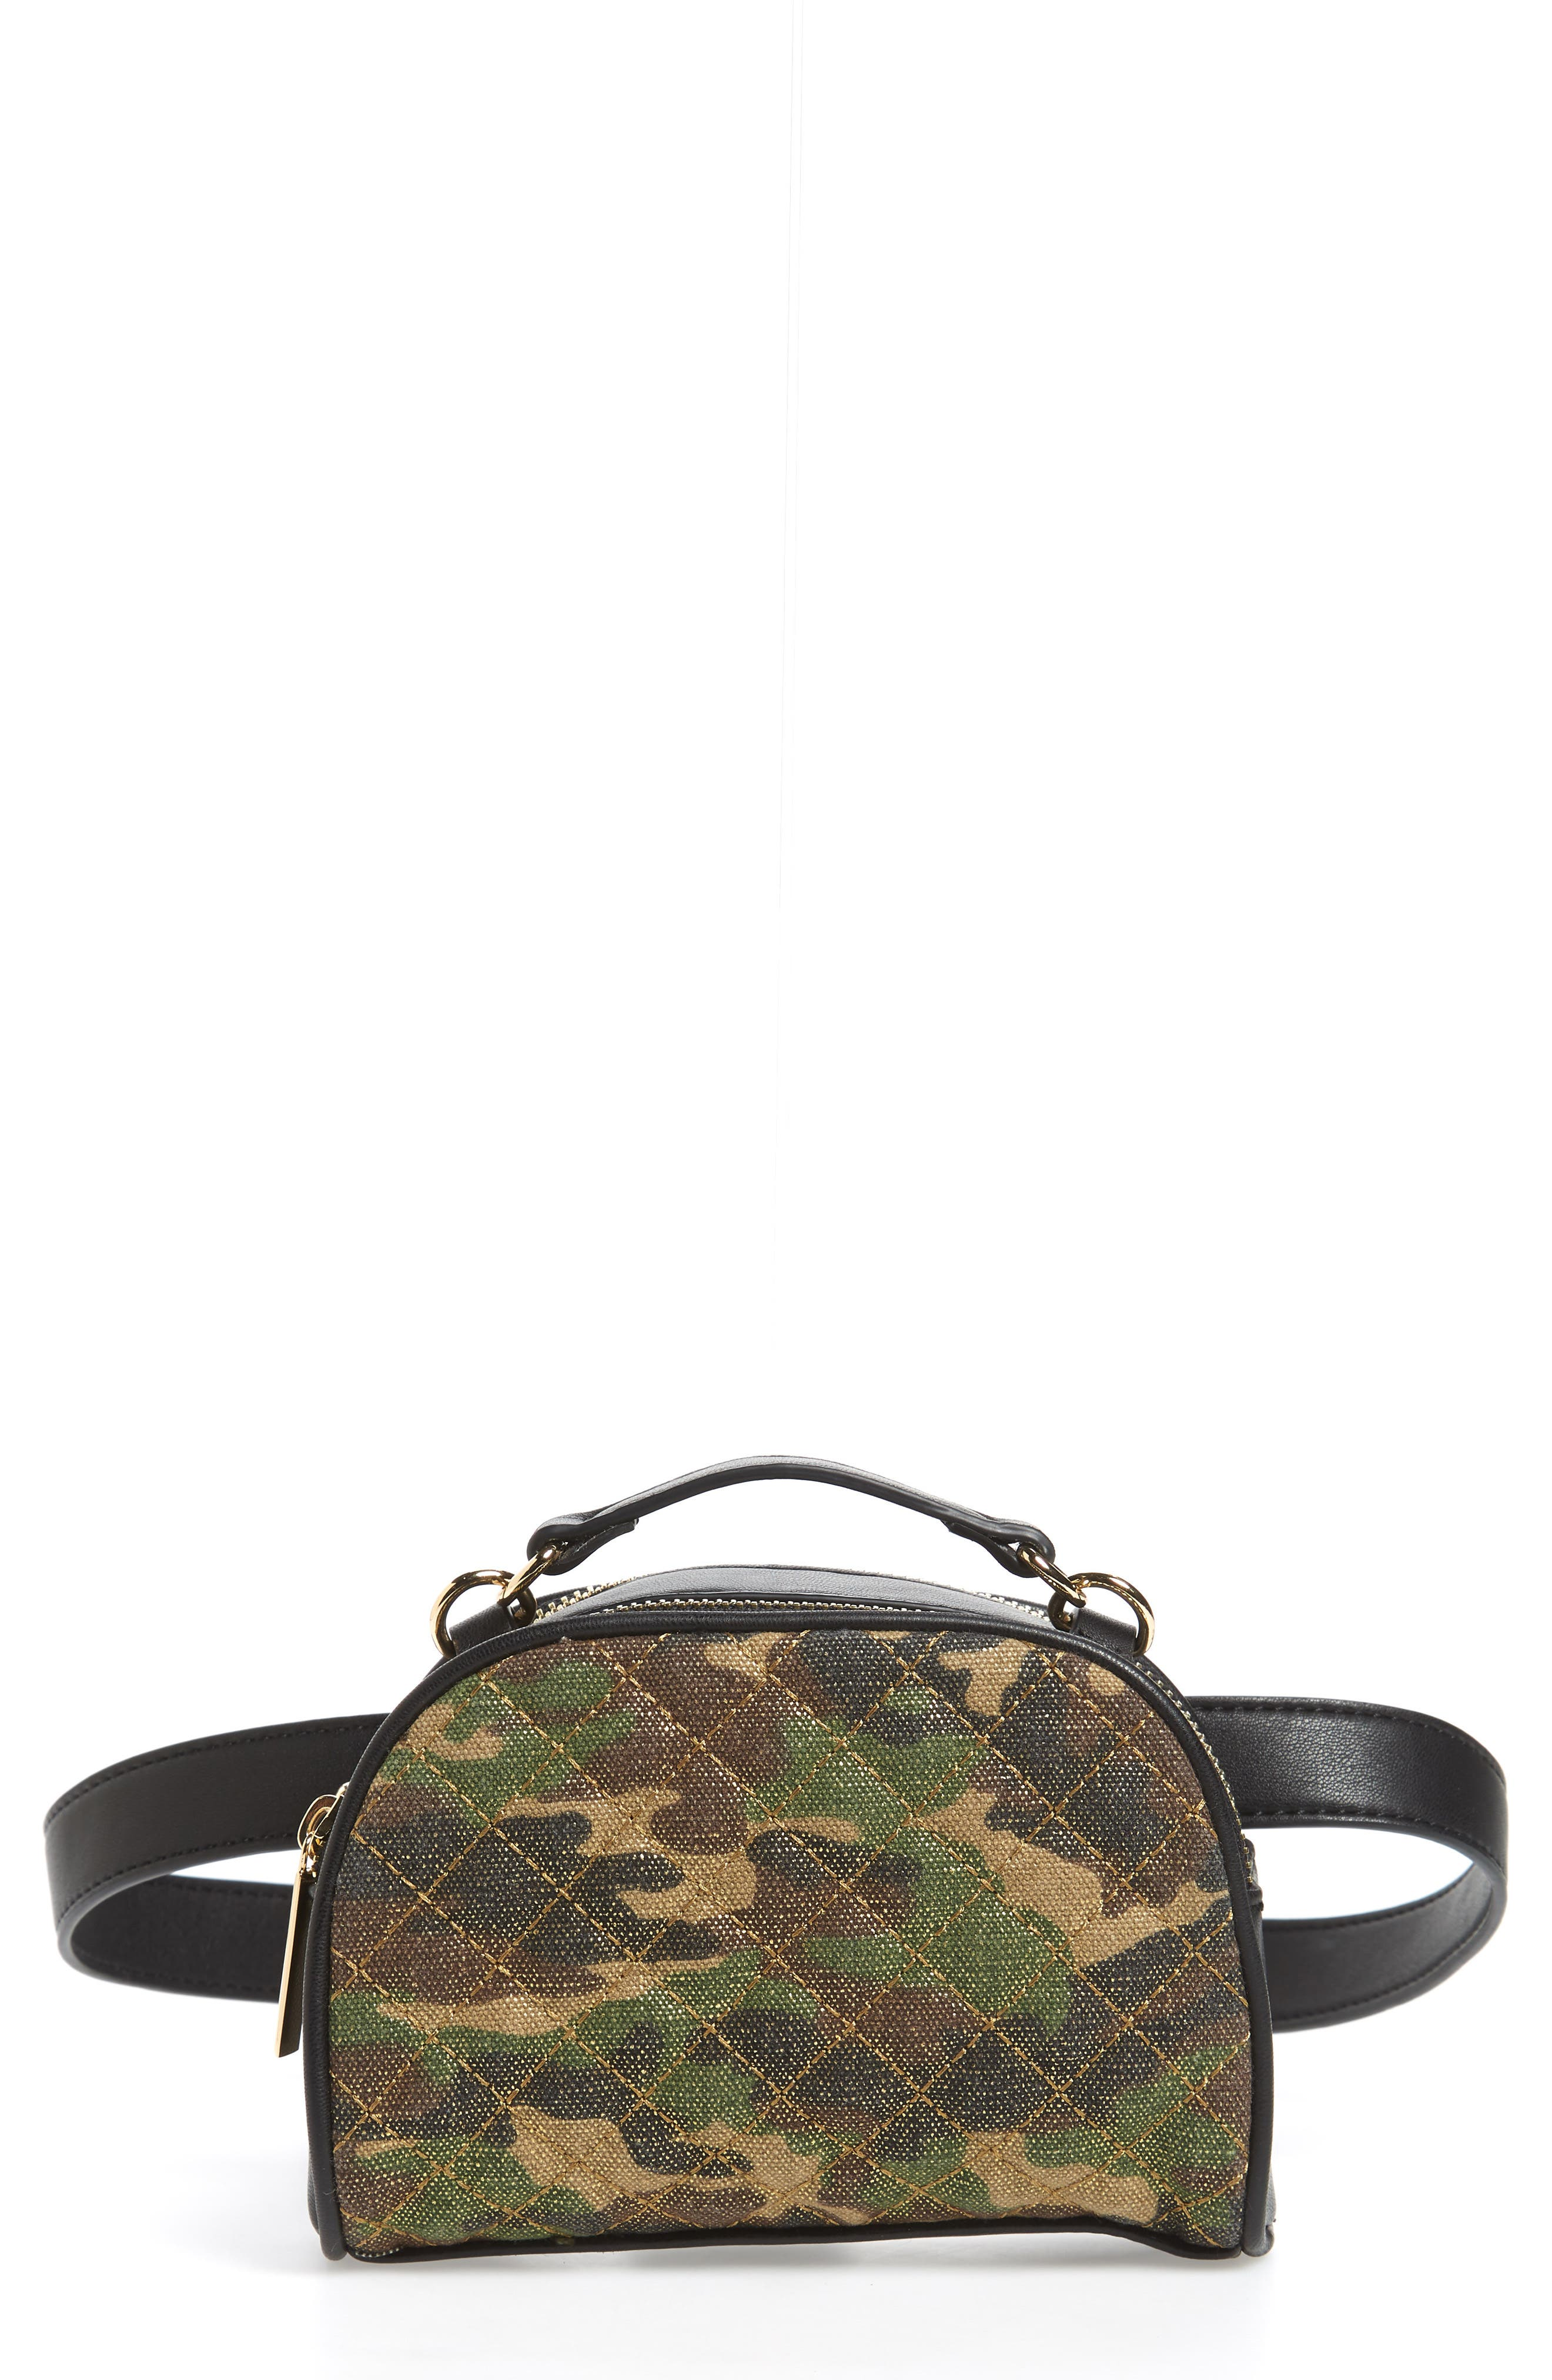 Mali + Lili Quilted Camouflage Belt Bag,                         Main,                         color, Camouflage